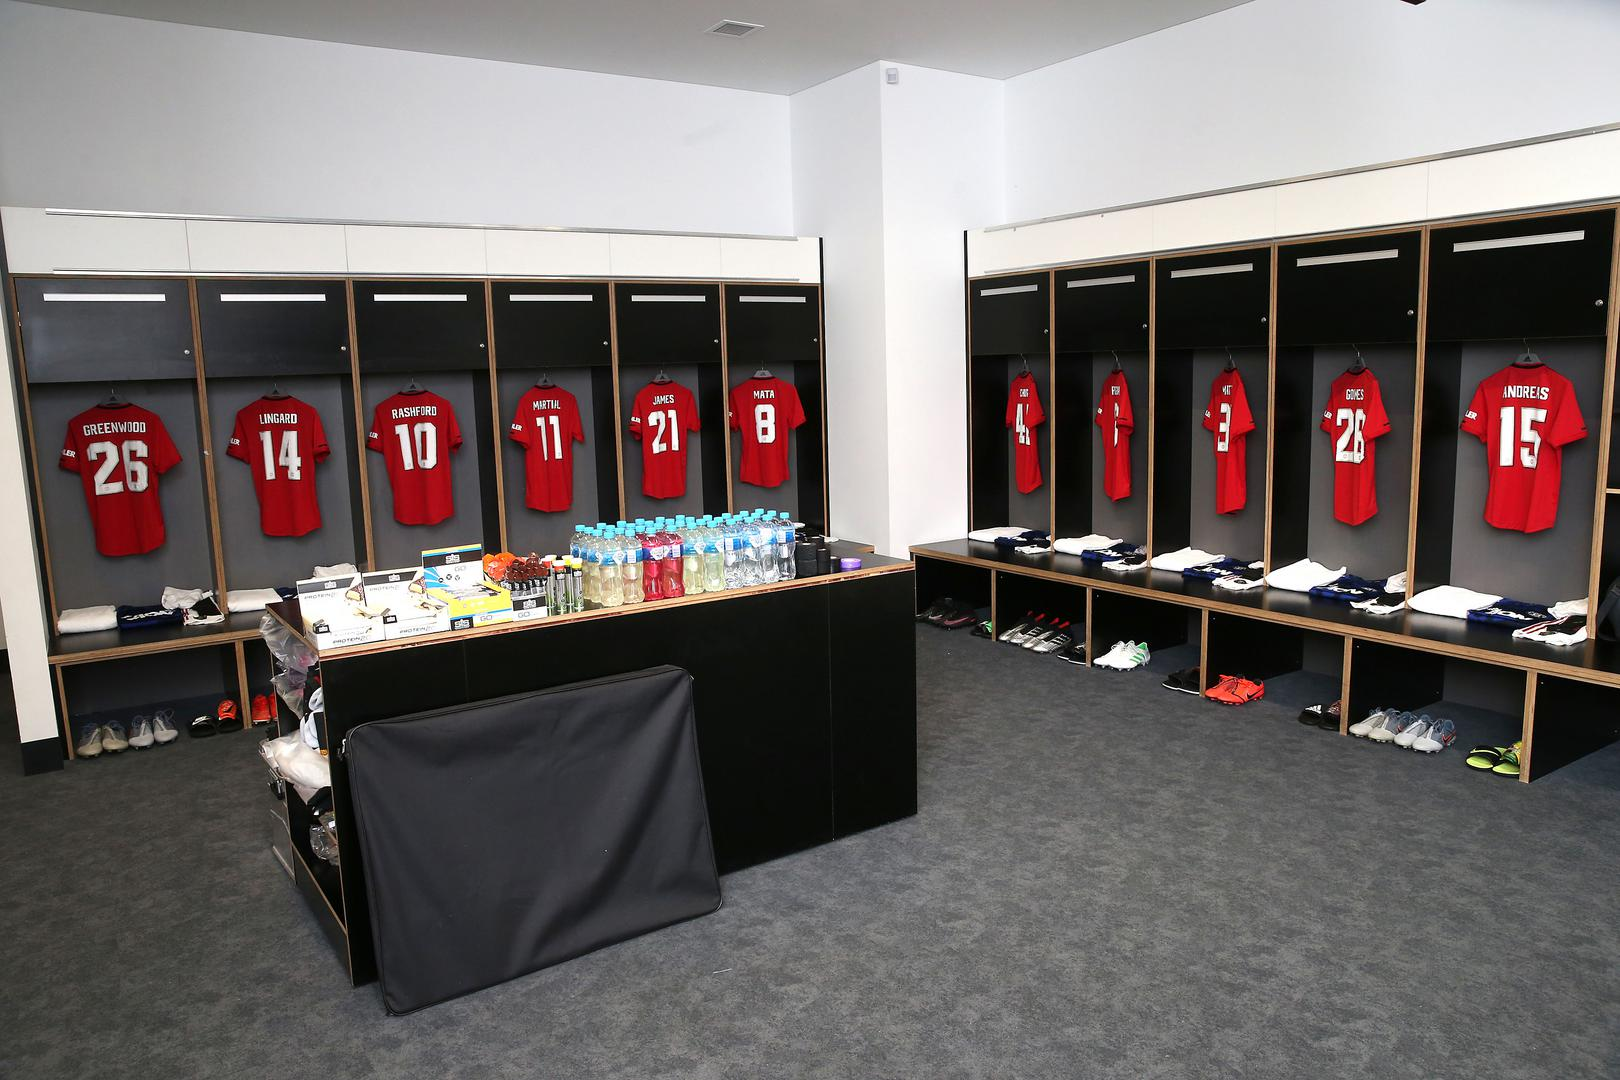 The Man Utd dressing room ahead of the friendly against Leeds United in Perth